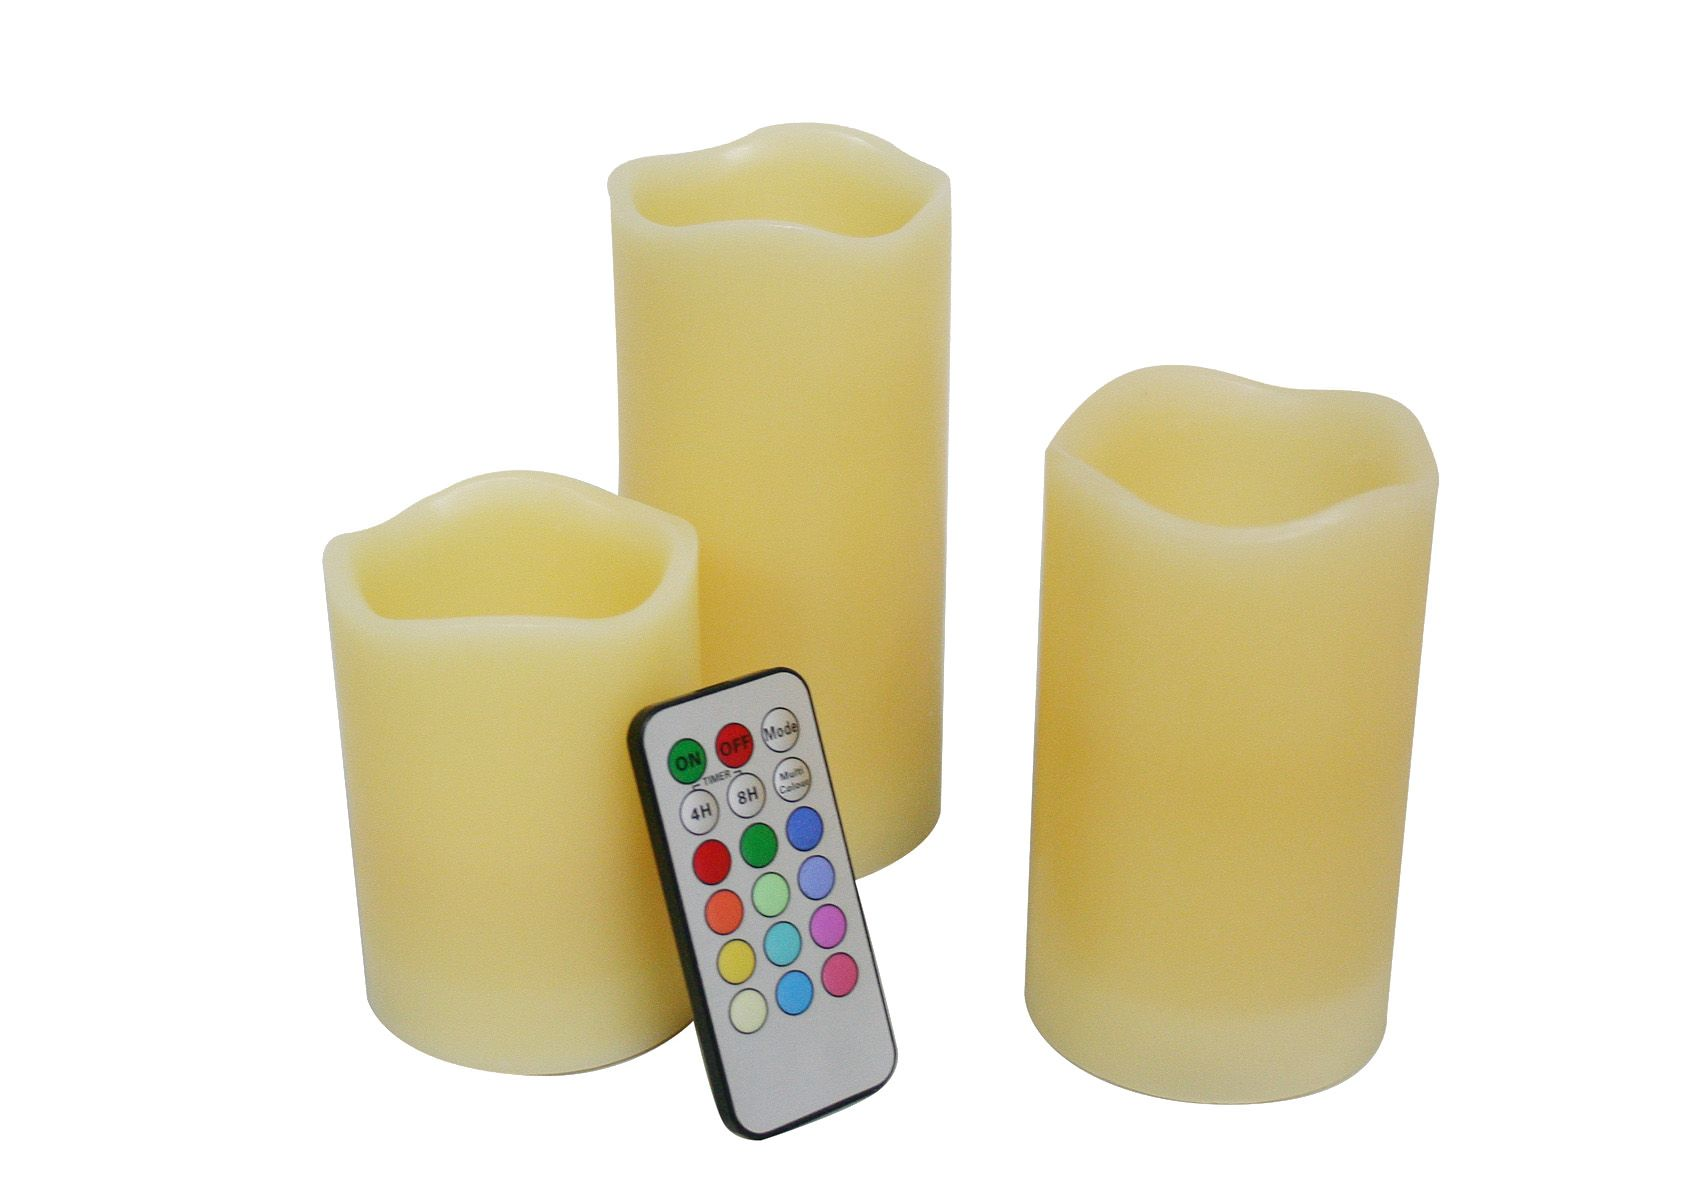 Candle Choice Set of 3 Real Wax Multi-Color Flameless Candles with Remote Control Timer, Ivory